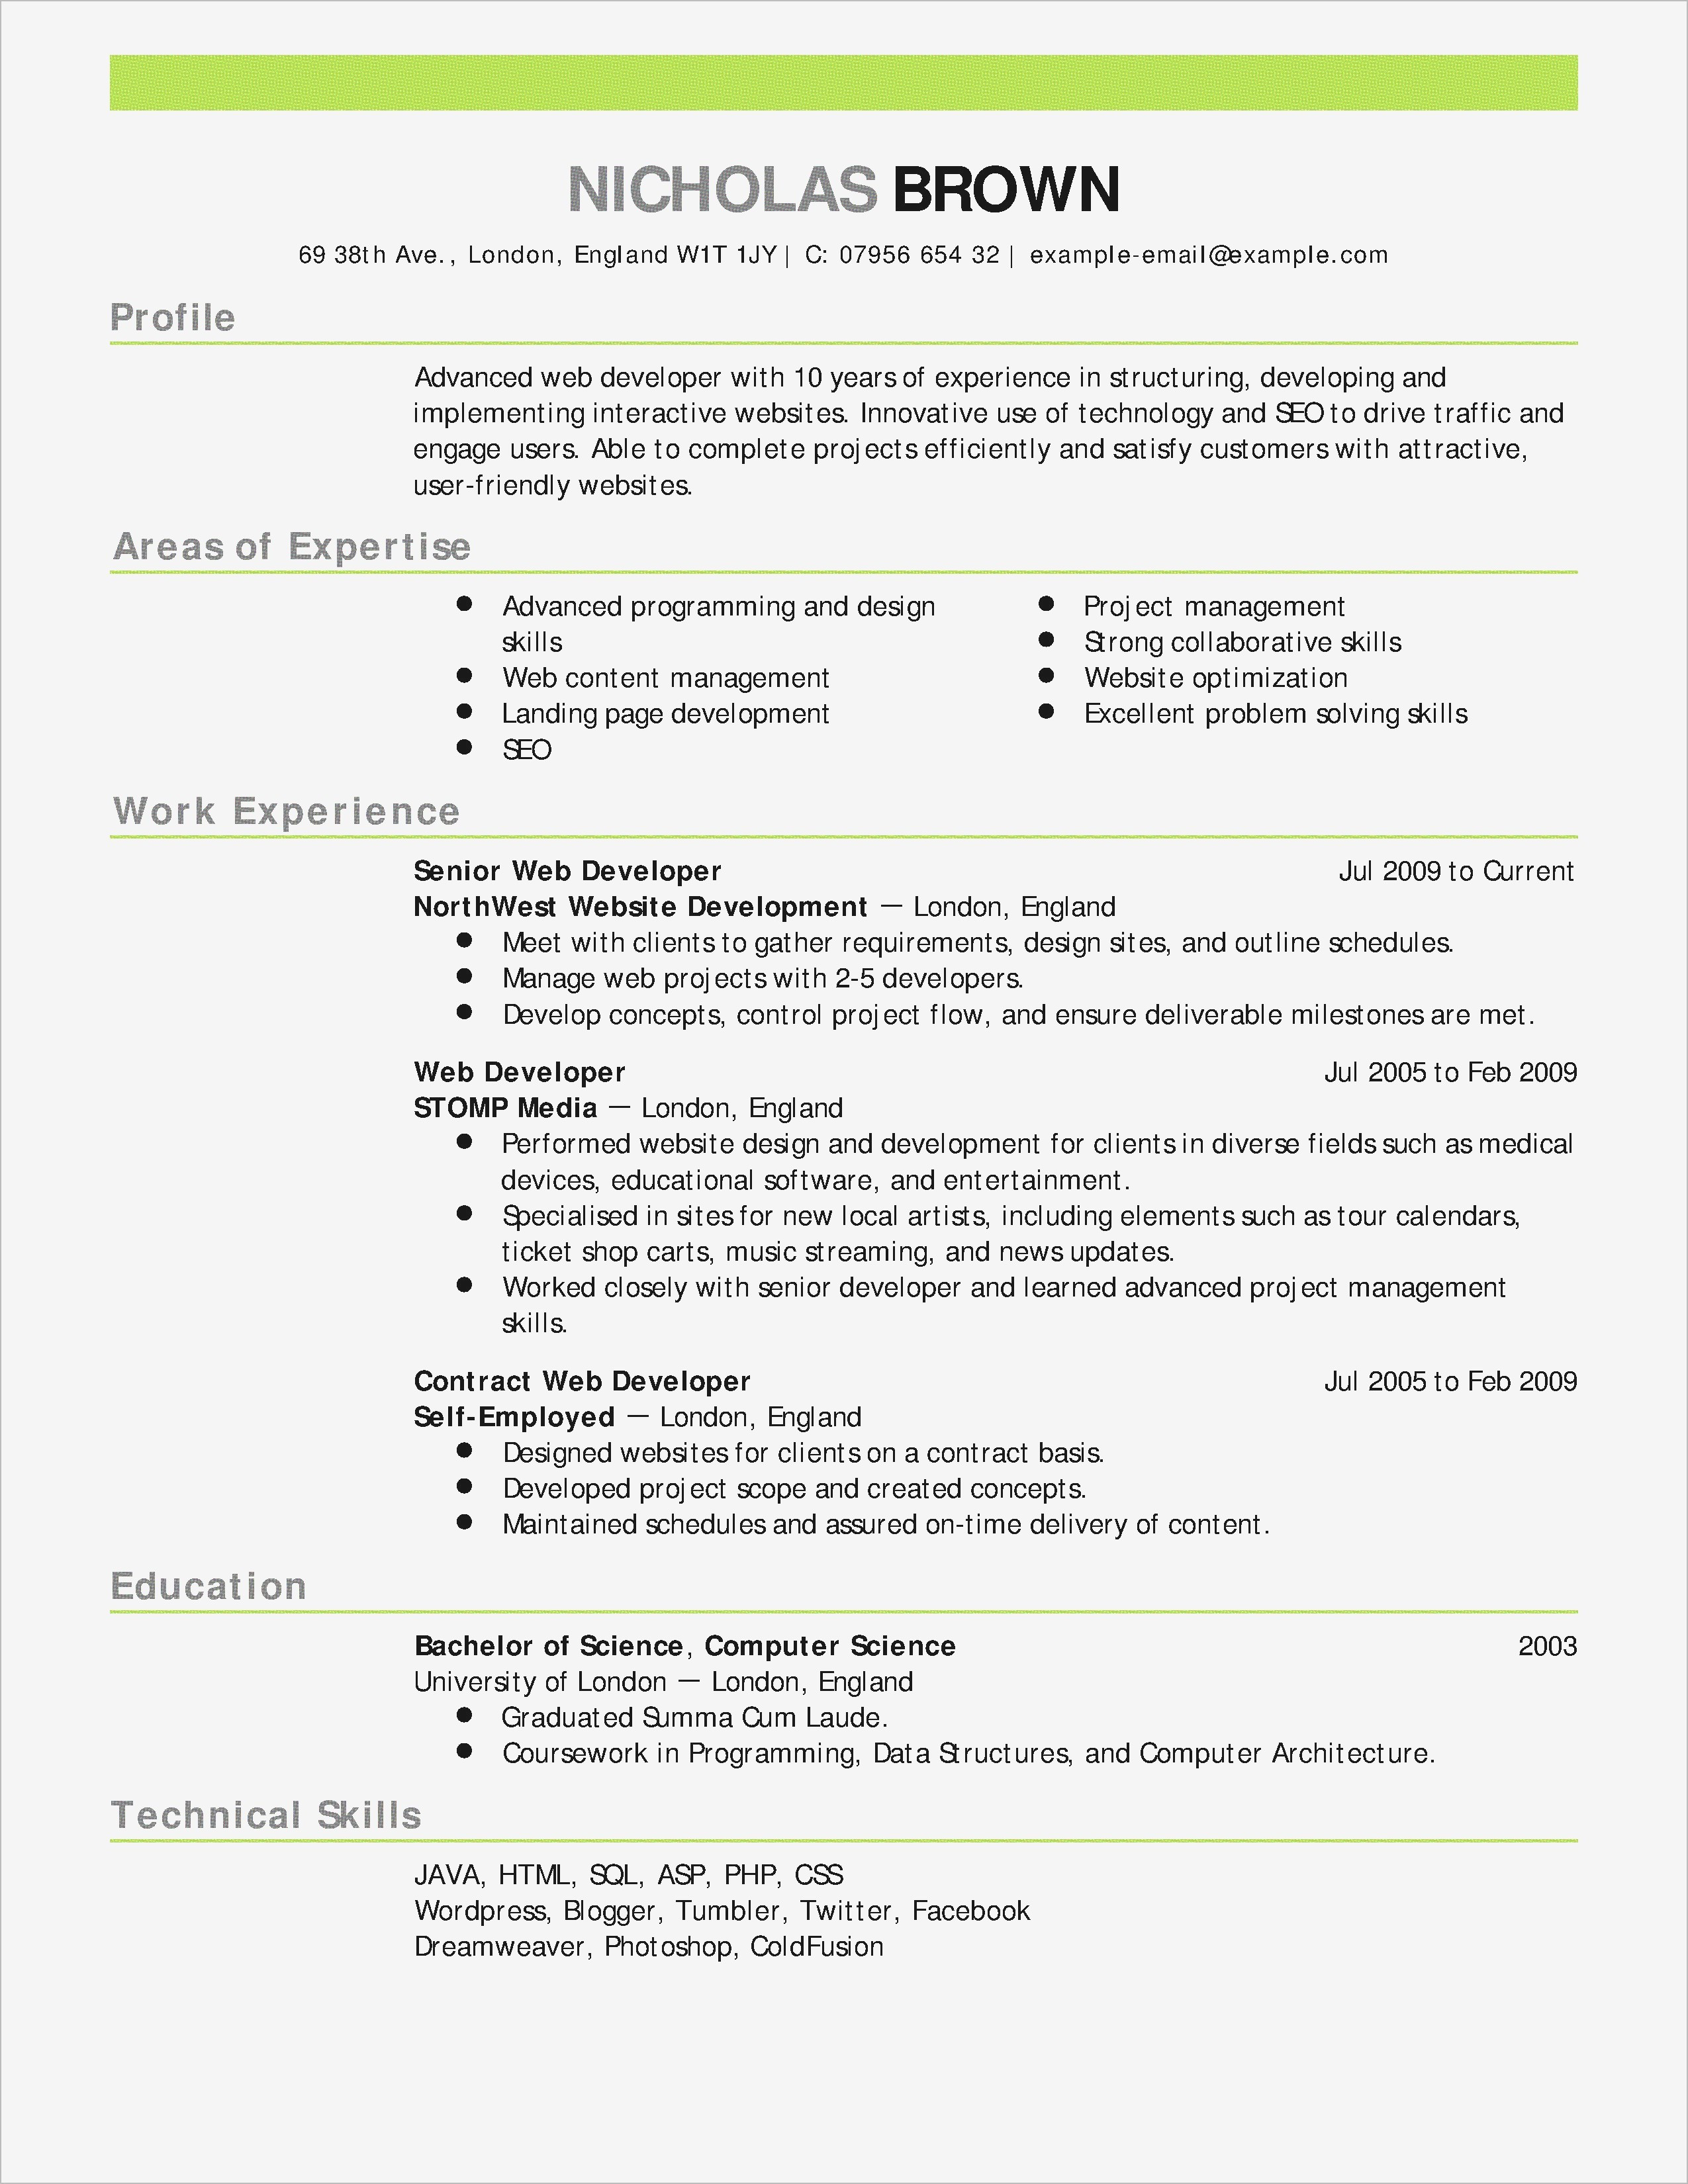 Writing A Cover Letter for A Resume - Maintenance Cover Letter Template Sample